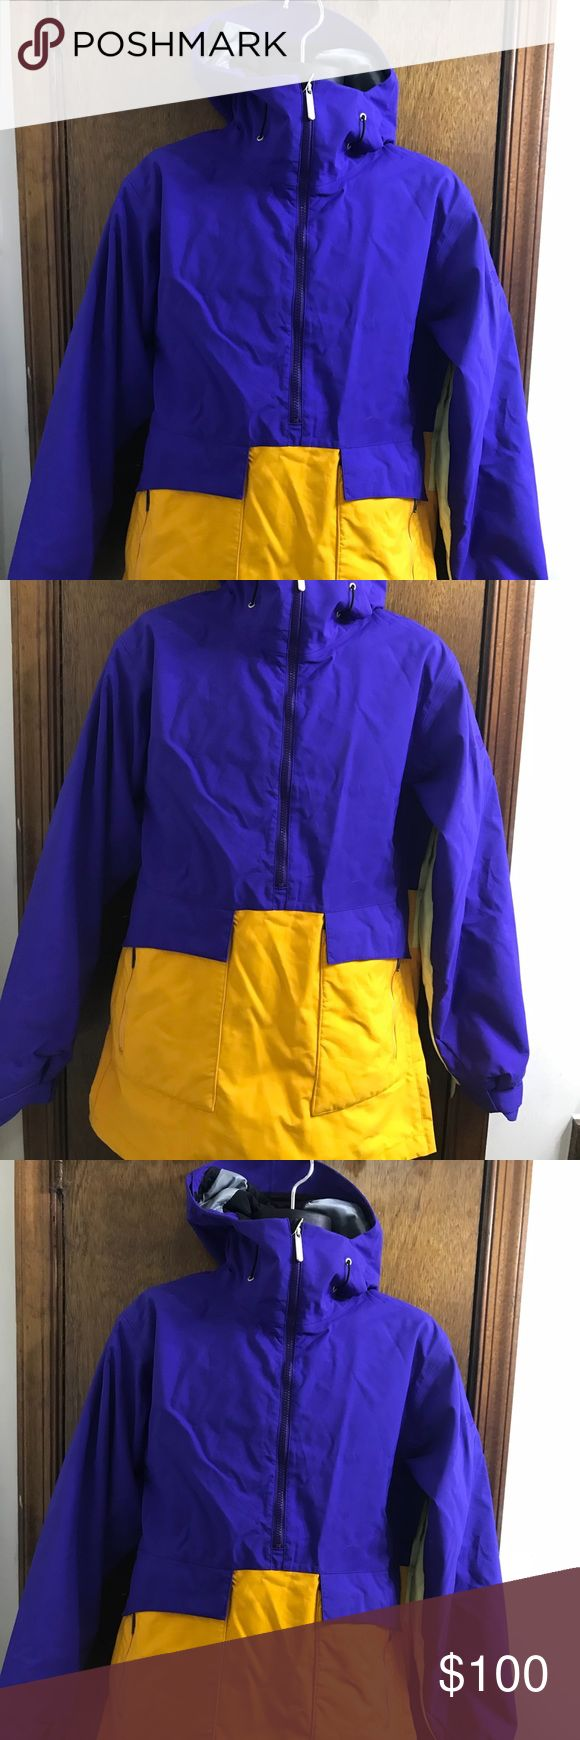 """Bonfire Snowboarding Company Strato Jacket Bonfire Snowboarding Company Strato Purple Yellow Orange Jacket Size Small Long Fit Style Strato Long fit Pit to pit 20"""" Sleeves 26"""" Shoulders 18"""" Length 31"""" bonfire snowboarding company Jackets & Coats"""